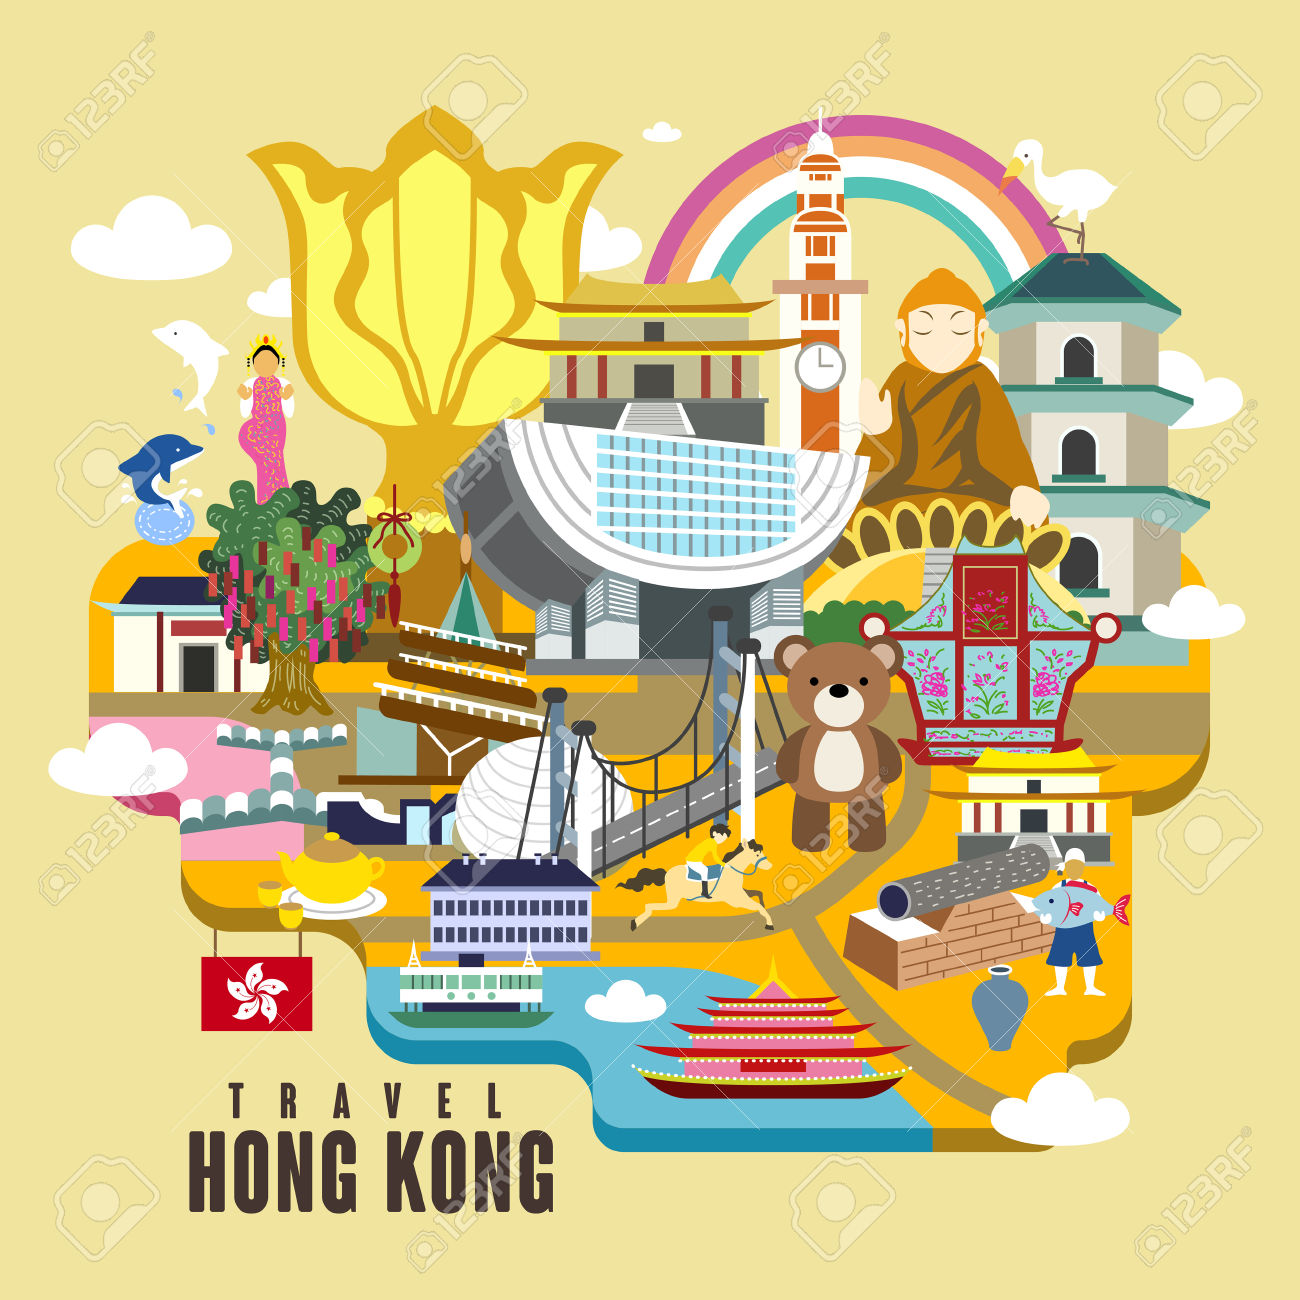 Hong Kong Travel Poster Design With Attractions In Flat Style.